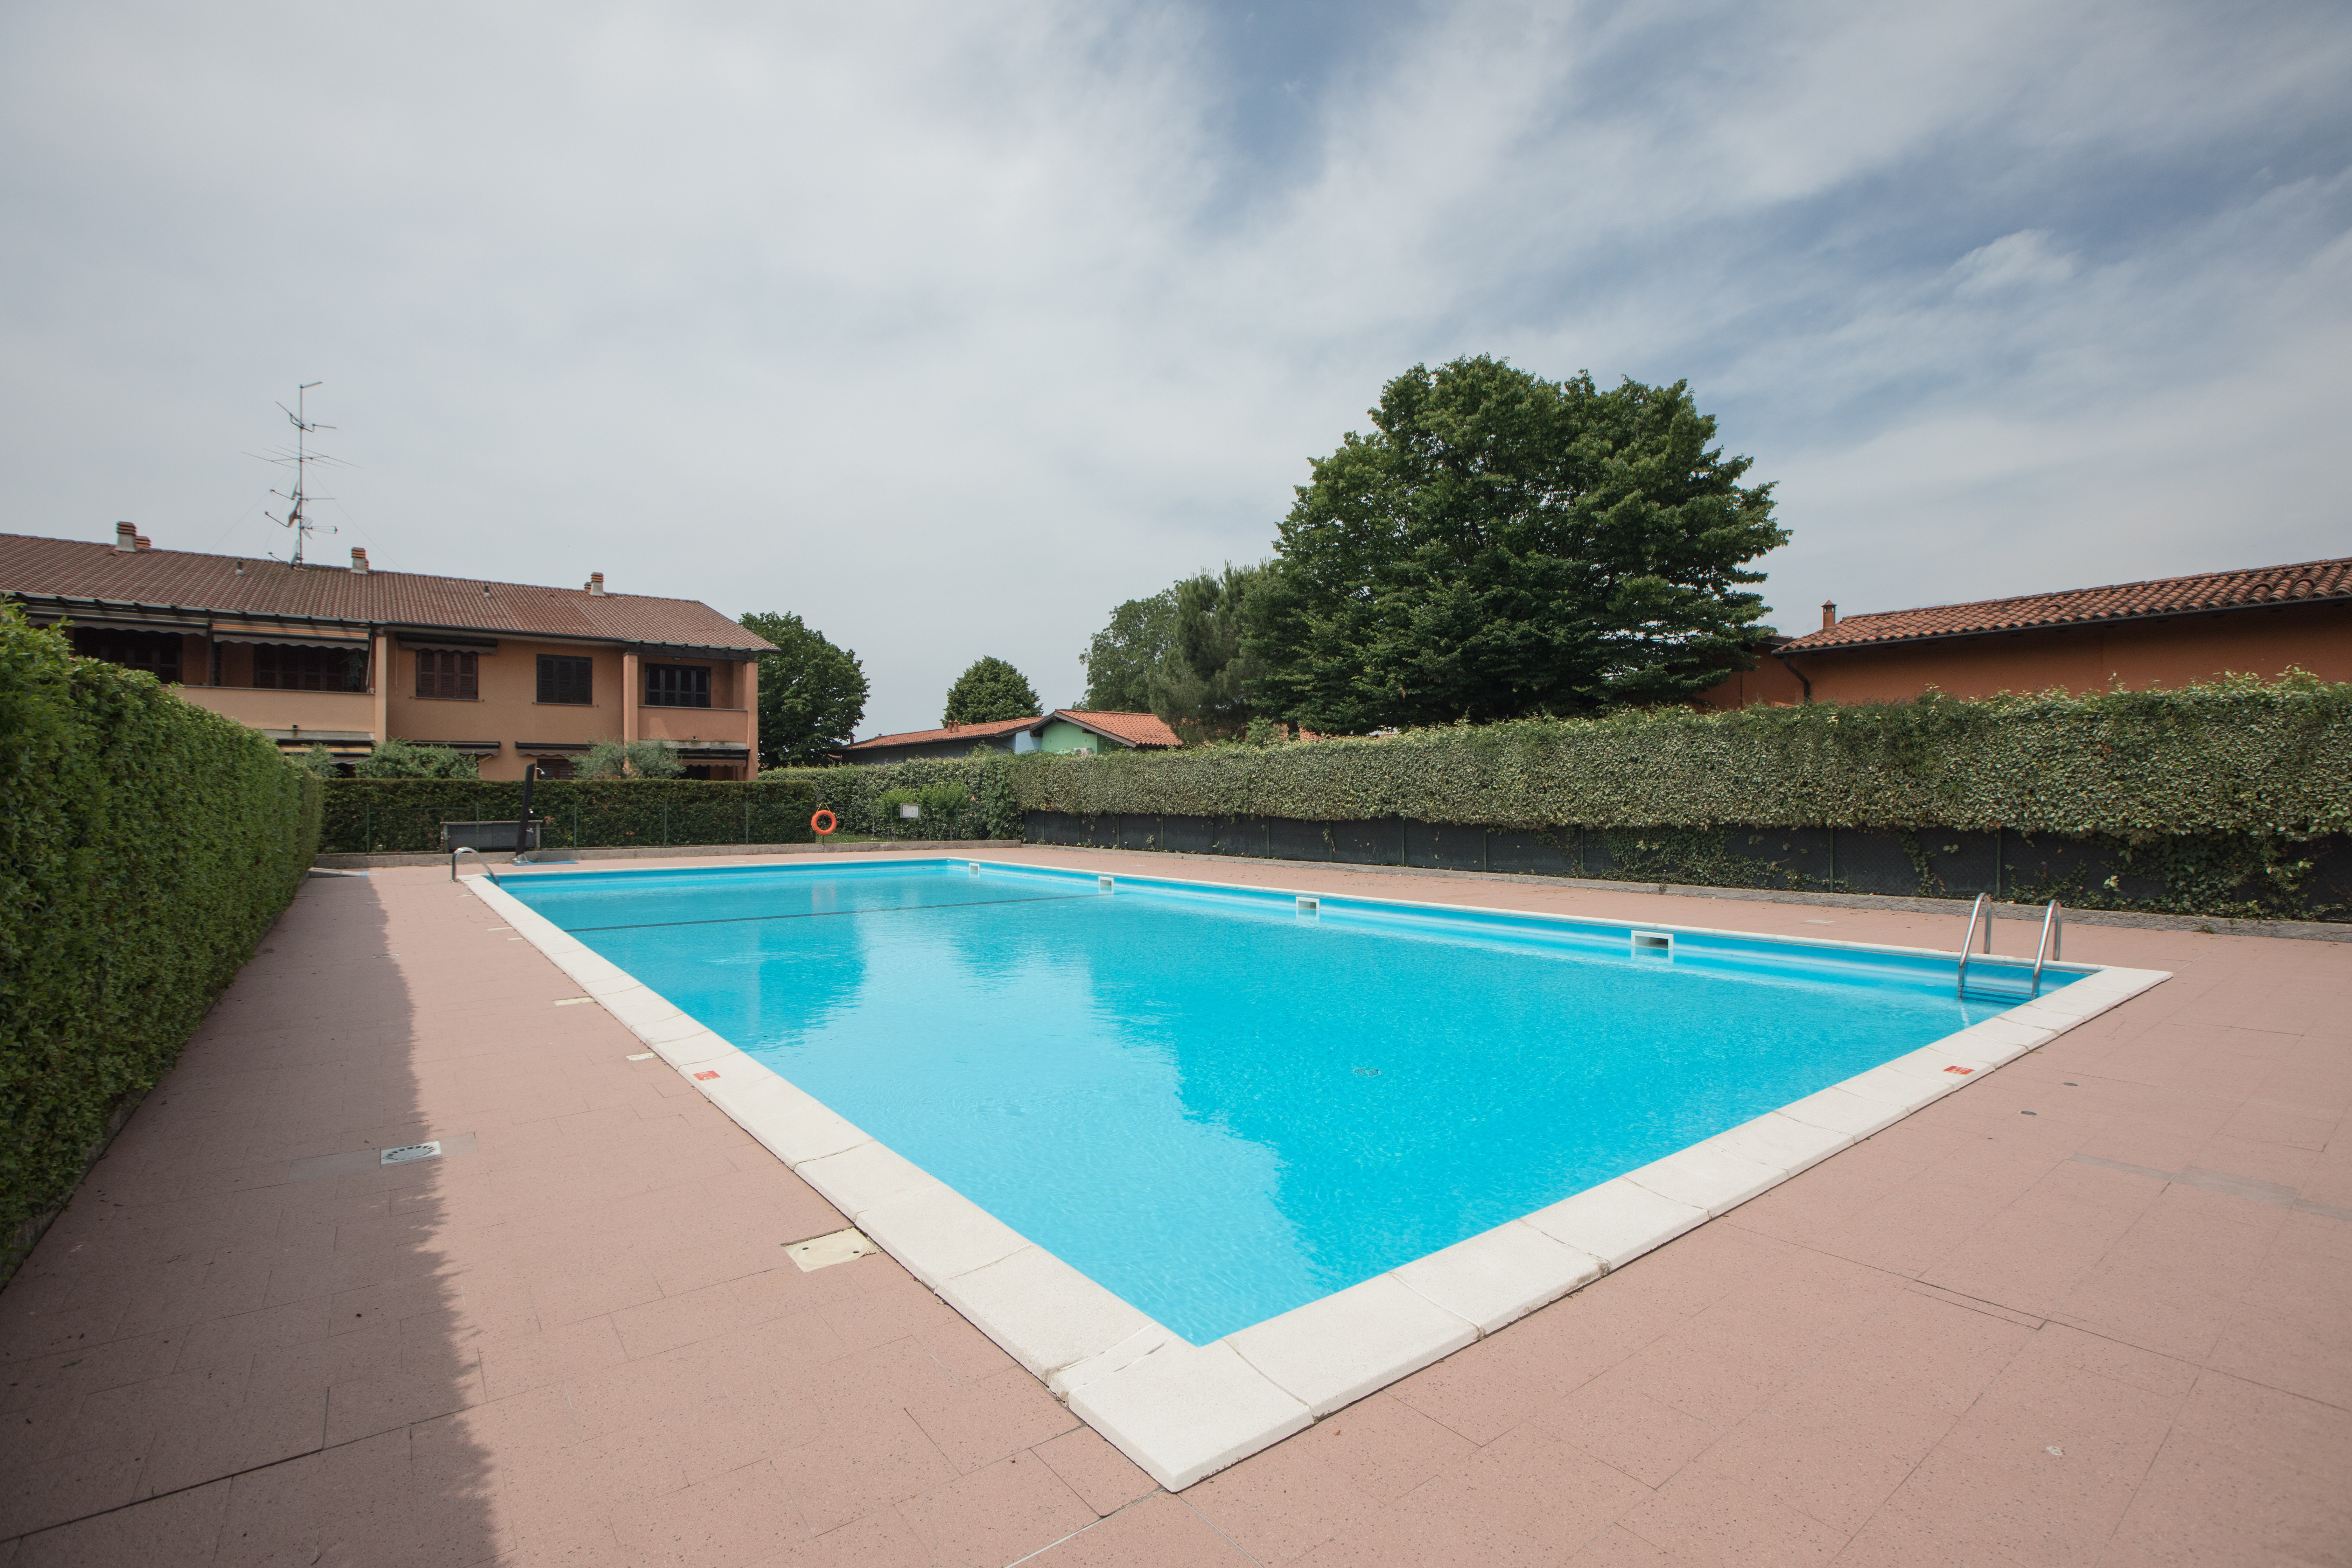 Isola Ecologica San Felice Sul Panaro sirmione confort easy garda lake - apartments for rent in